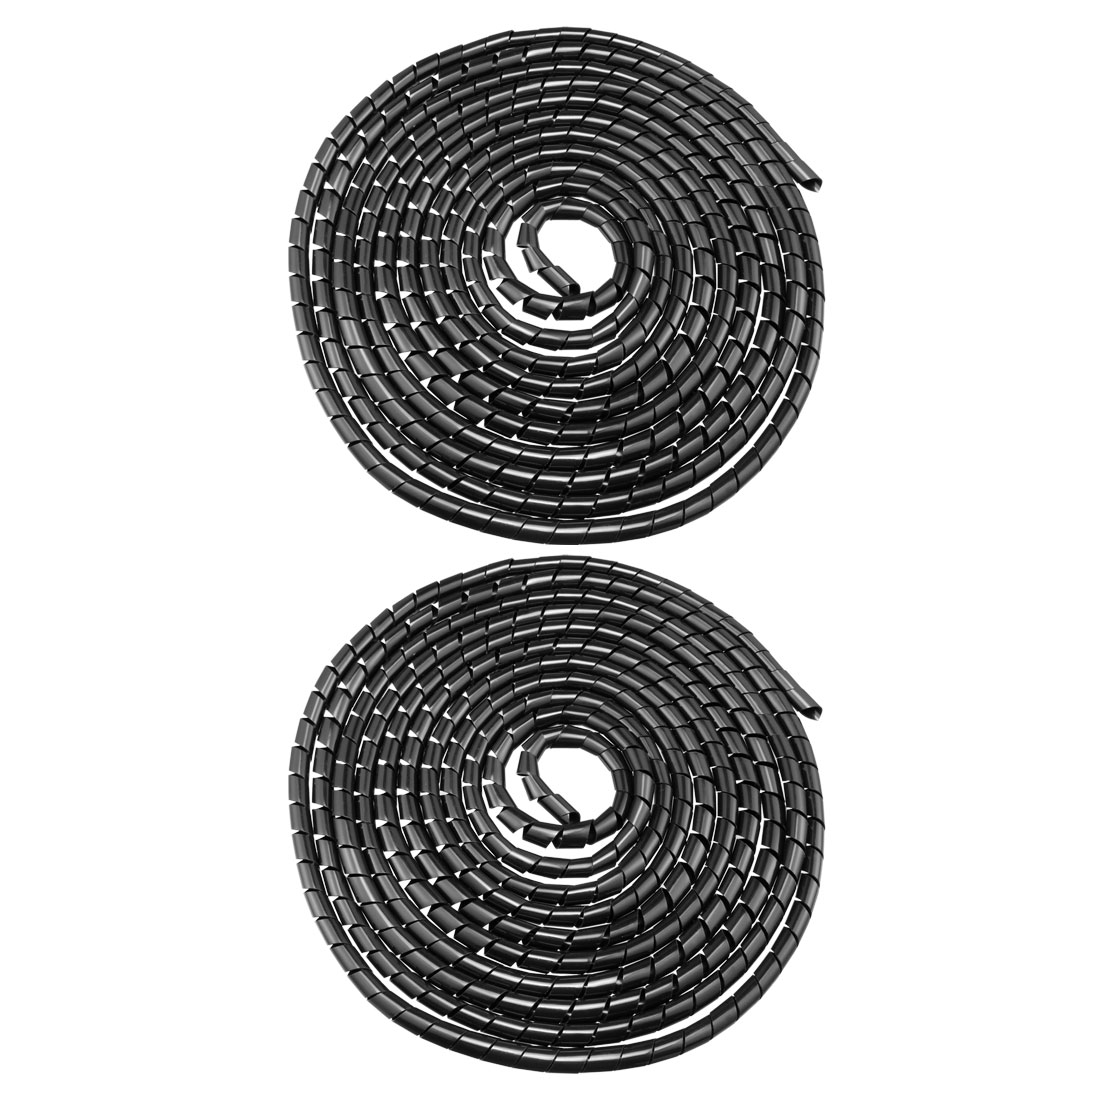 2pcs 12mm Flexible Spiral Tube Cable Wiring Wrap Computer Manage Cord 5.5-8M